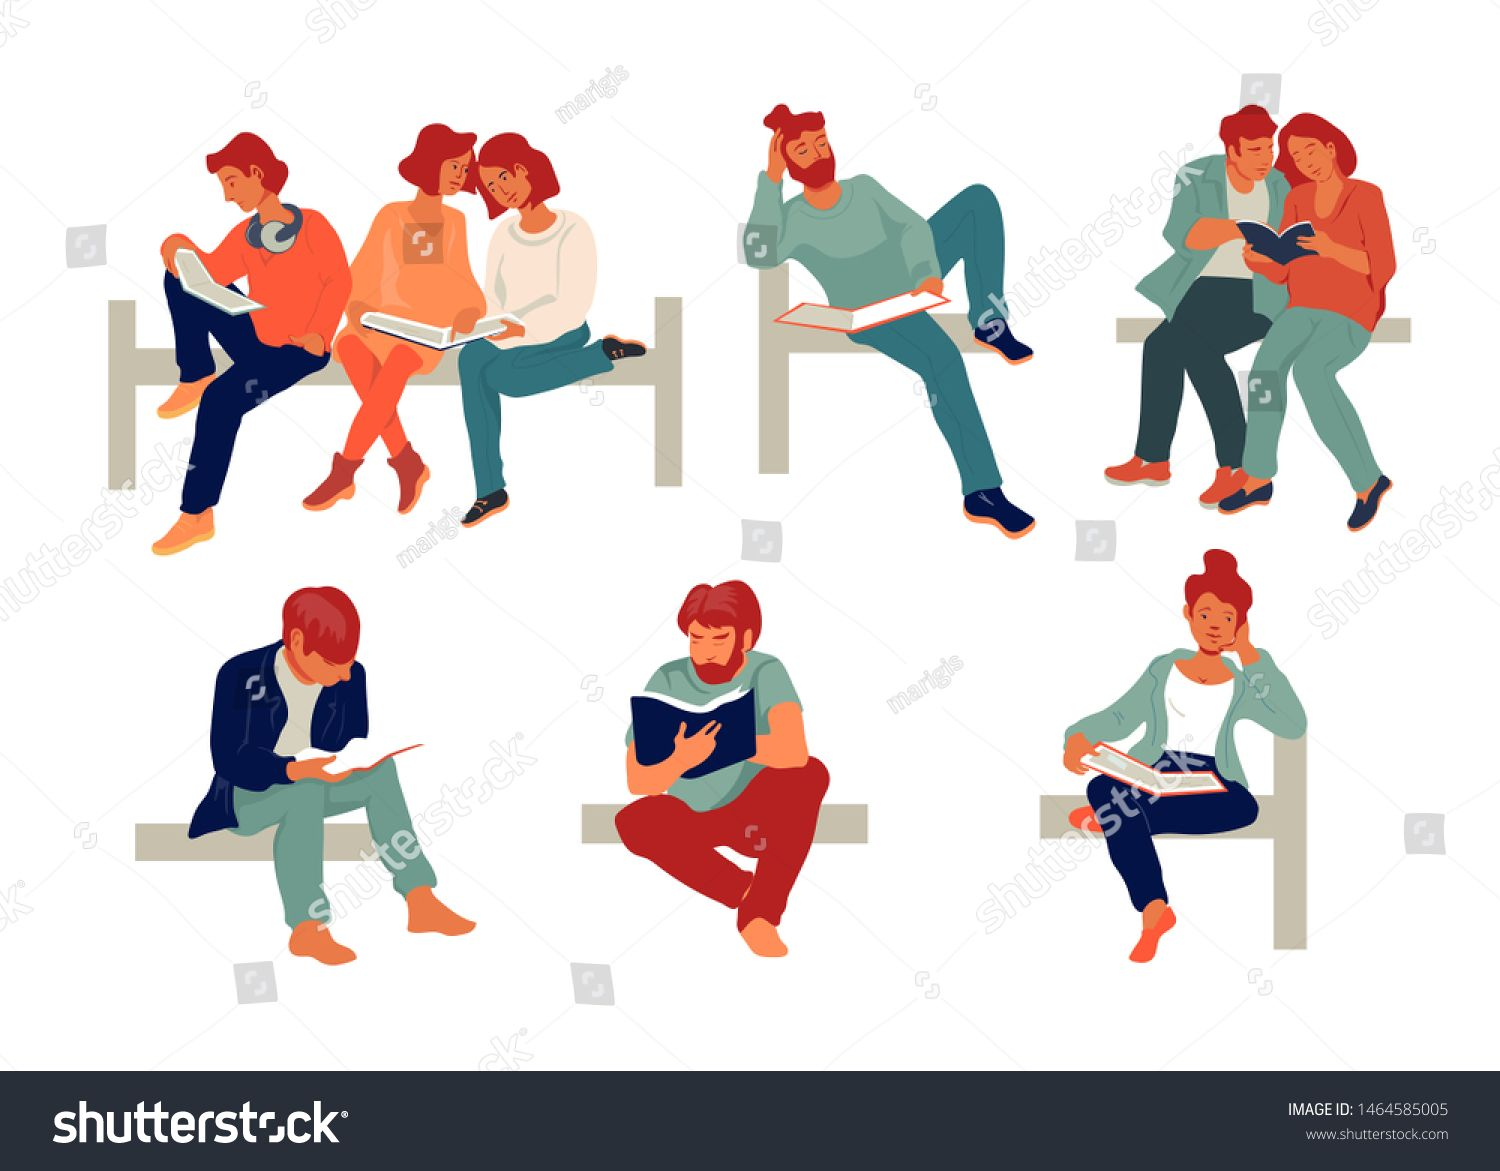 Diverse People Reading Books Studying And Education Concept Set Of Flat Vector Illustration Isolated On White Backgrou Books To Read Diverse People Education